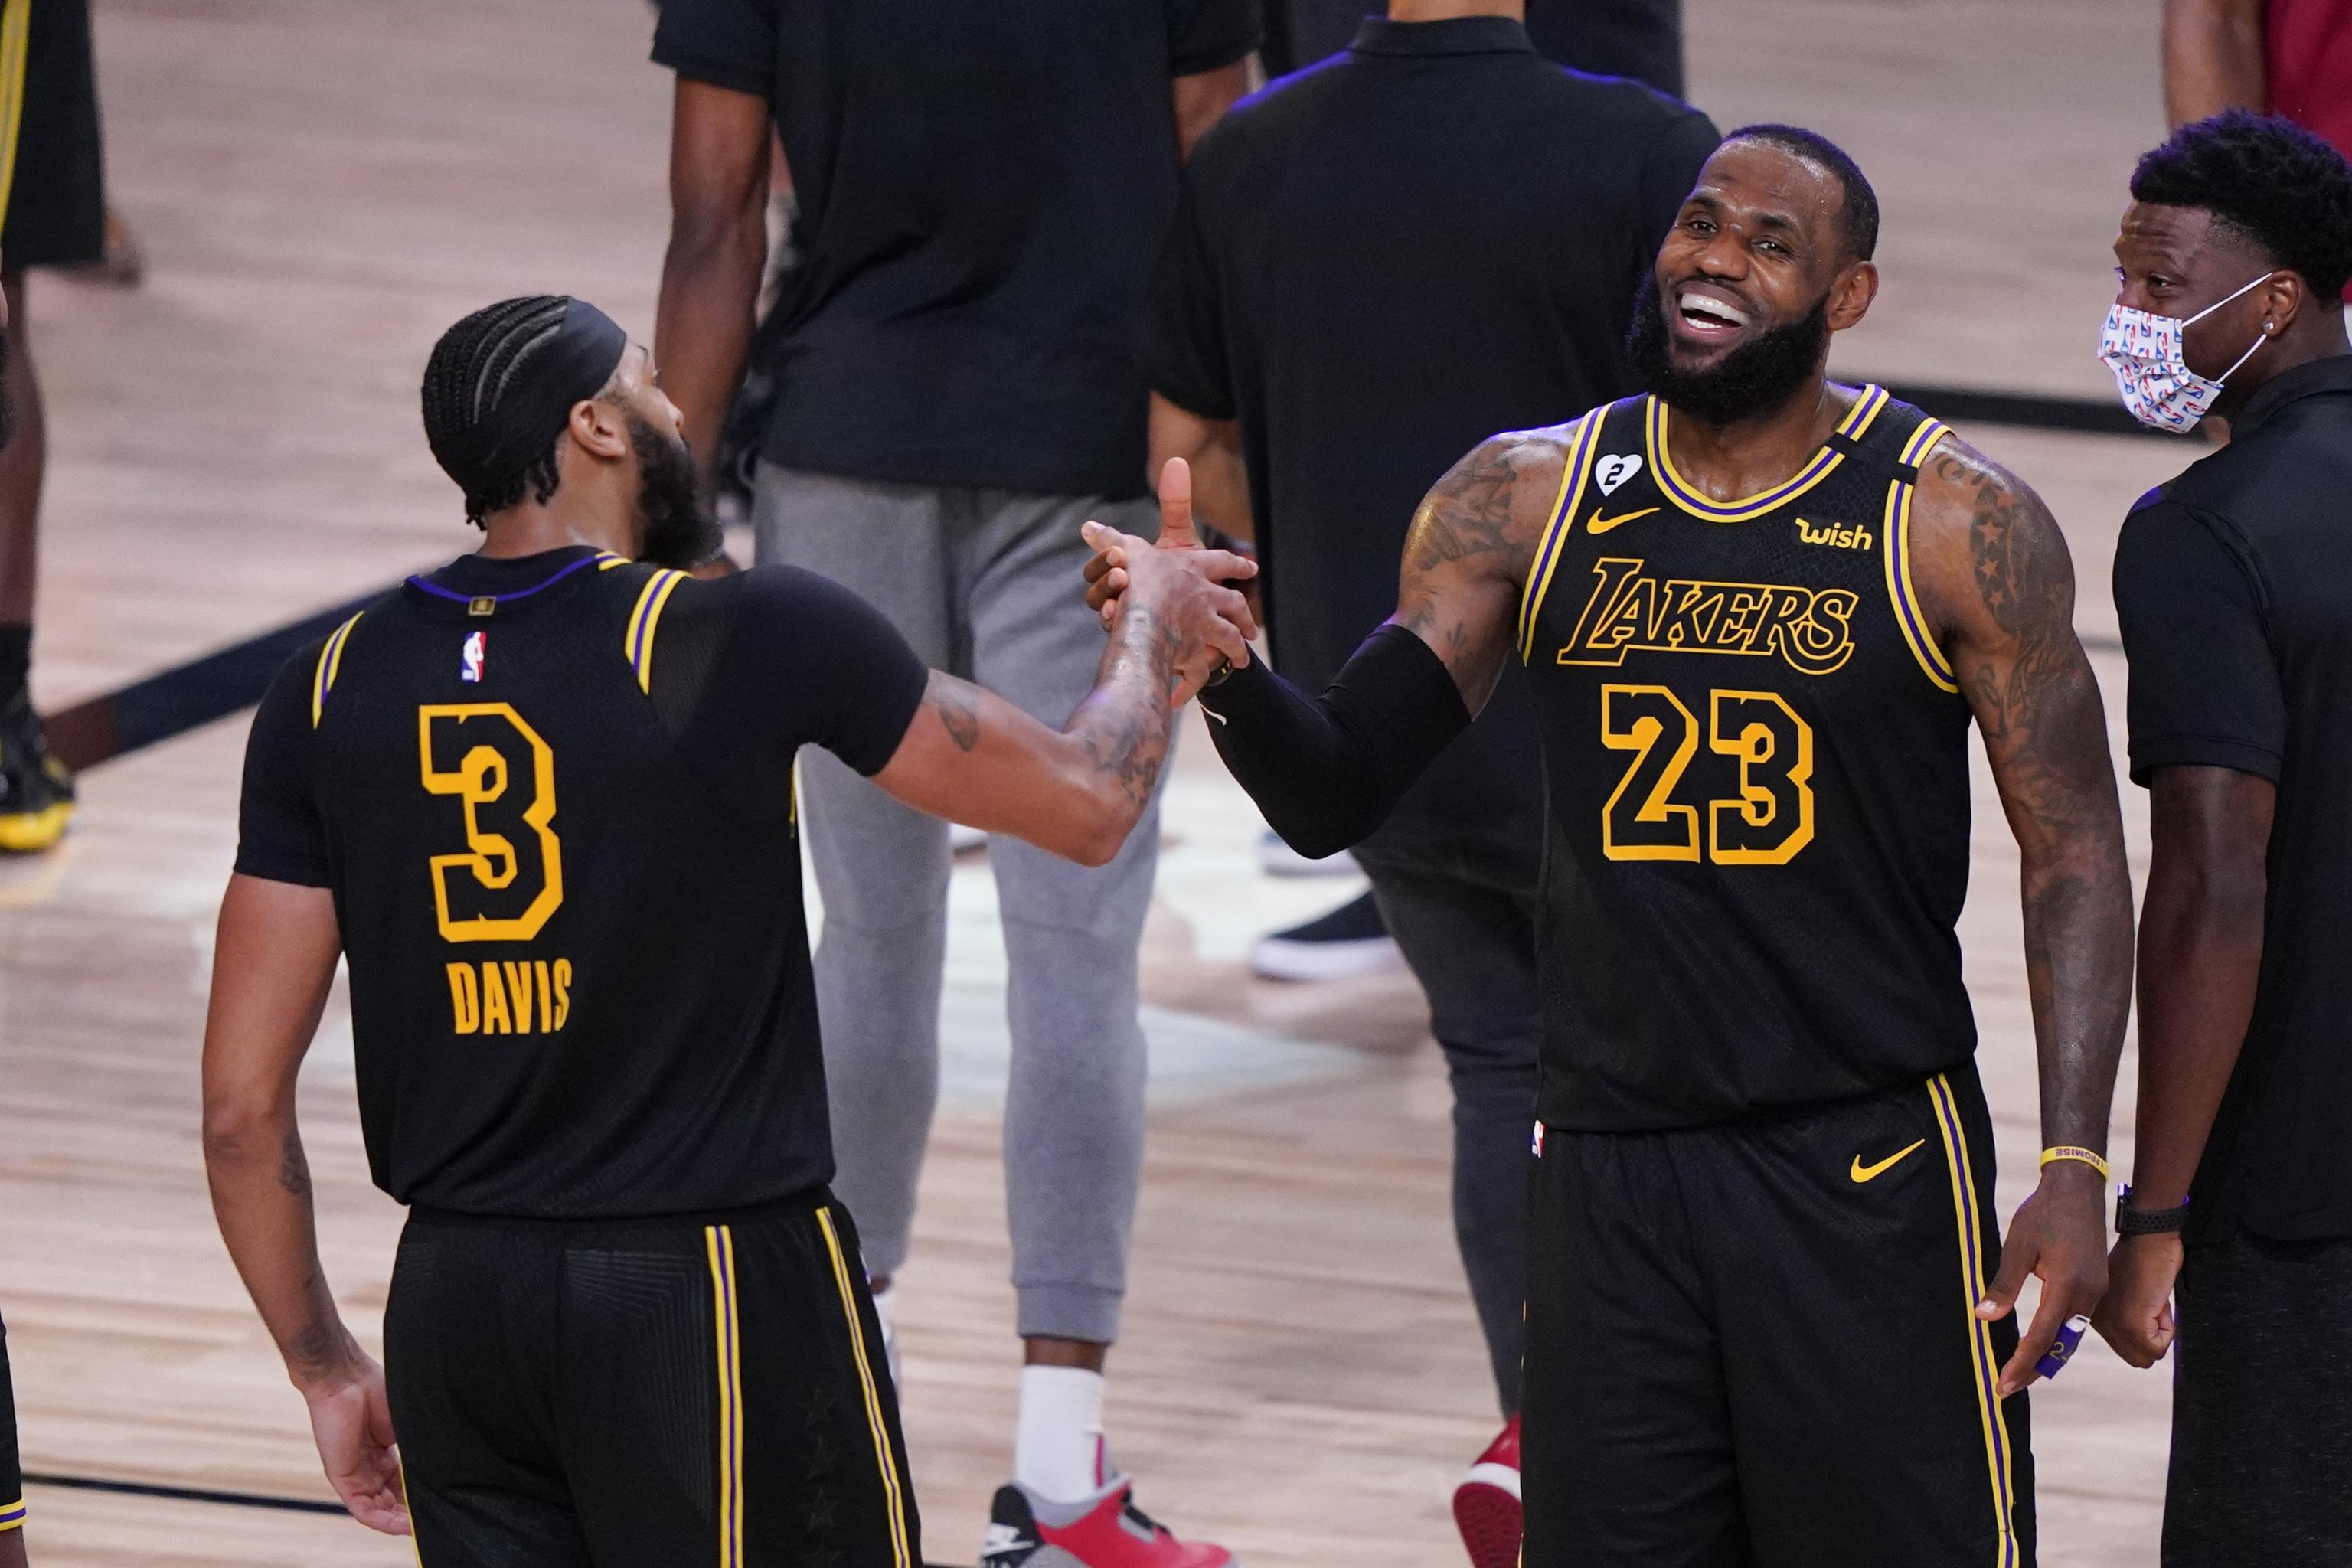 Lakers To Wear Black Mamba Jerseys Honoring Kobe Bryant For Game 5 Vs Heat Bleacher Report Latest News Videos And Highlights